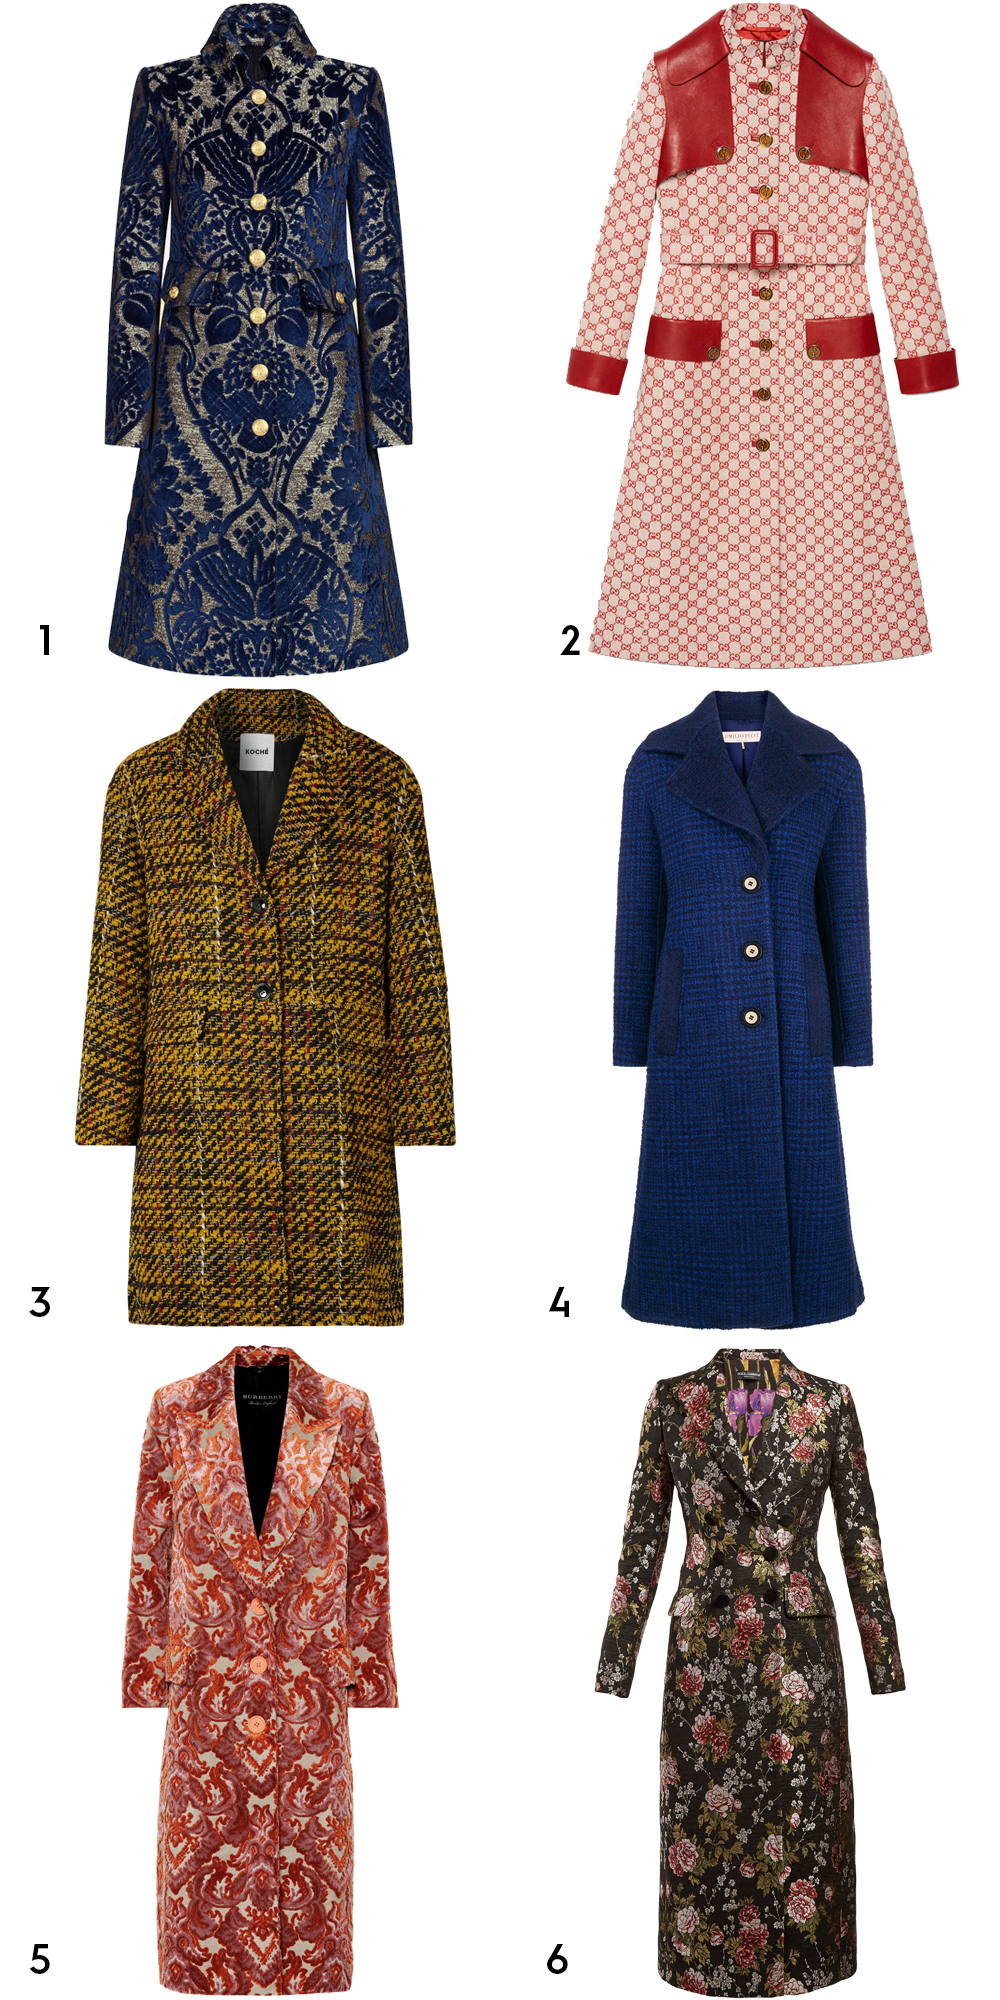 1 Jacquard velvet coat, €2,950 at dolceandgabanna.com, 2 GG canvas trench coat, €4,800 at gucci.com, 3 Taylor oversized tweed coat by Koché, €1,196 at net-a-porter.com, 4embroidered single-breasted coat by Emilio Pucci, €3,980 at farfetch.com, 5 Damask velvet jacquard coat by Burberry, €2,550 at mytheresa.com, 6 Floral jacquard long coat by Dolce & Gabanna, €2,750 at matchesfashion.com